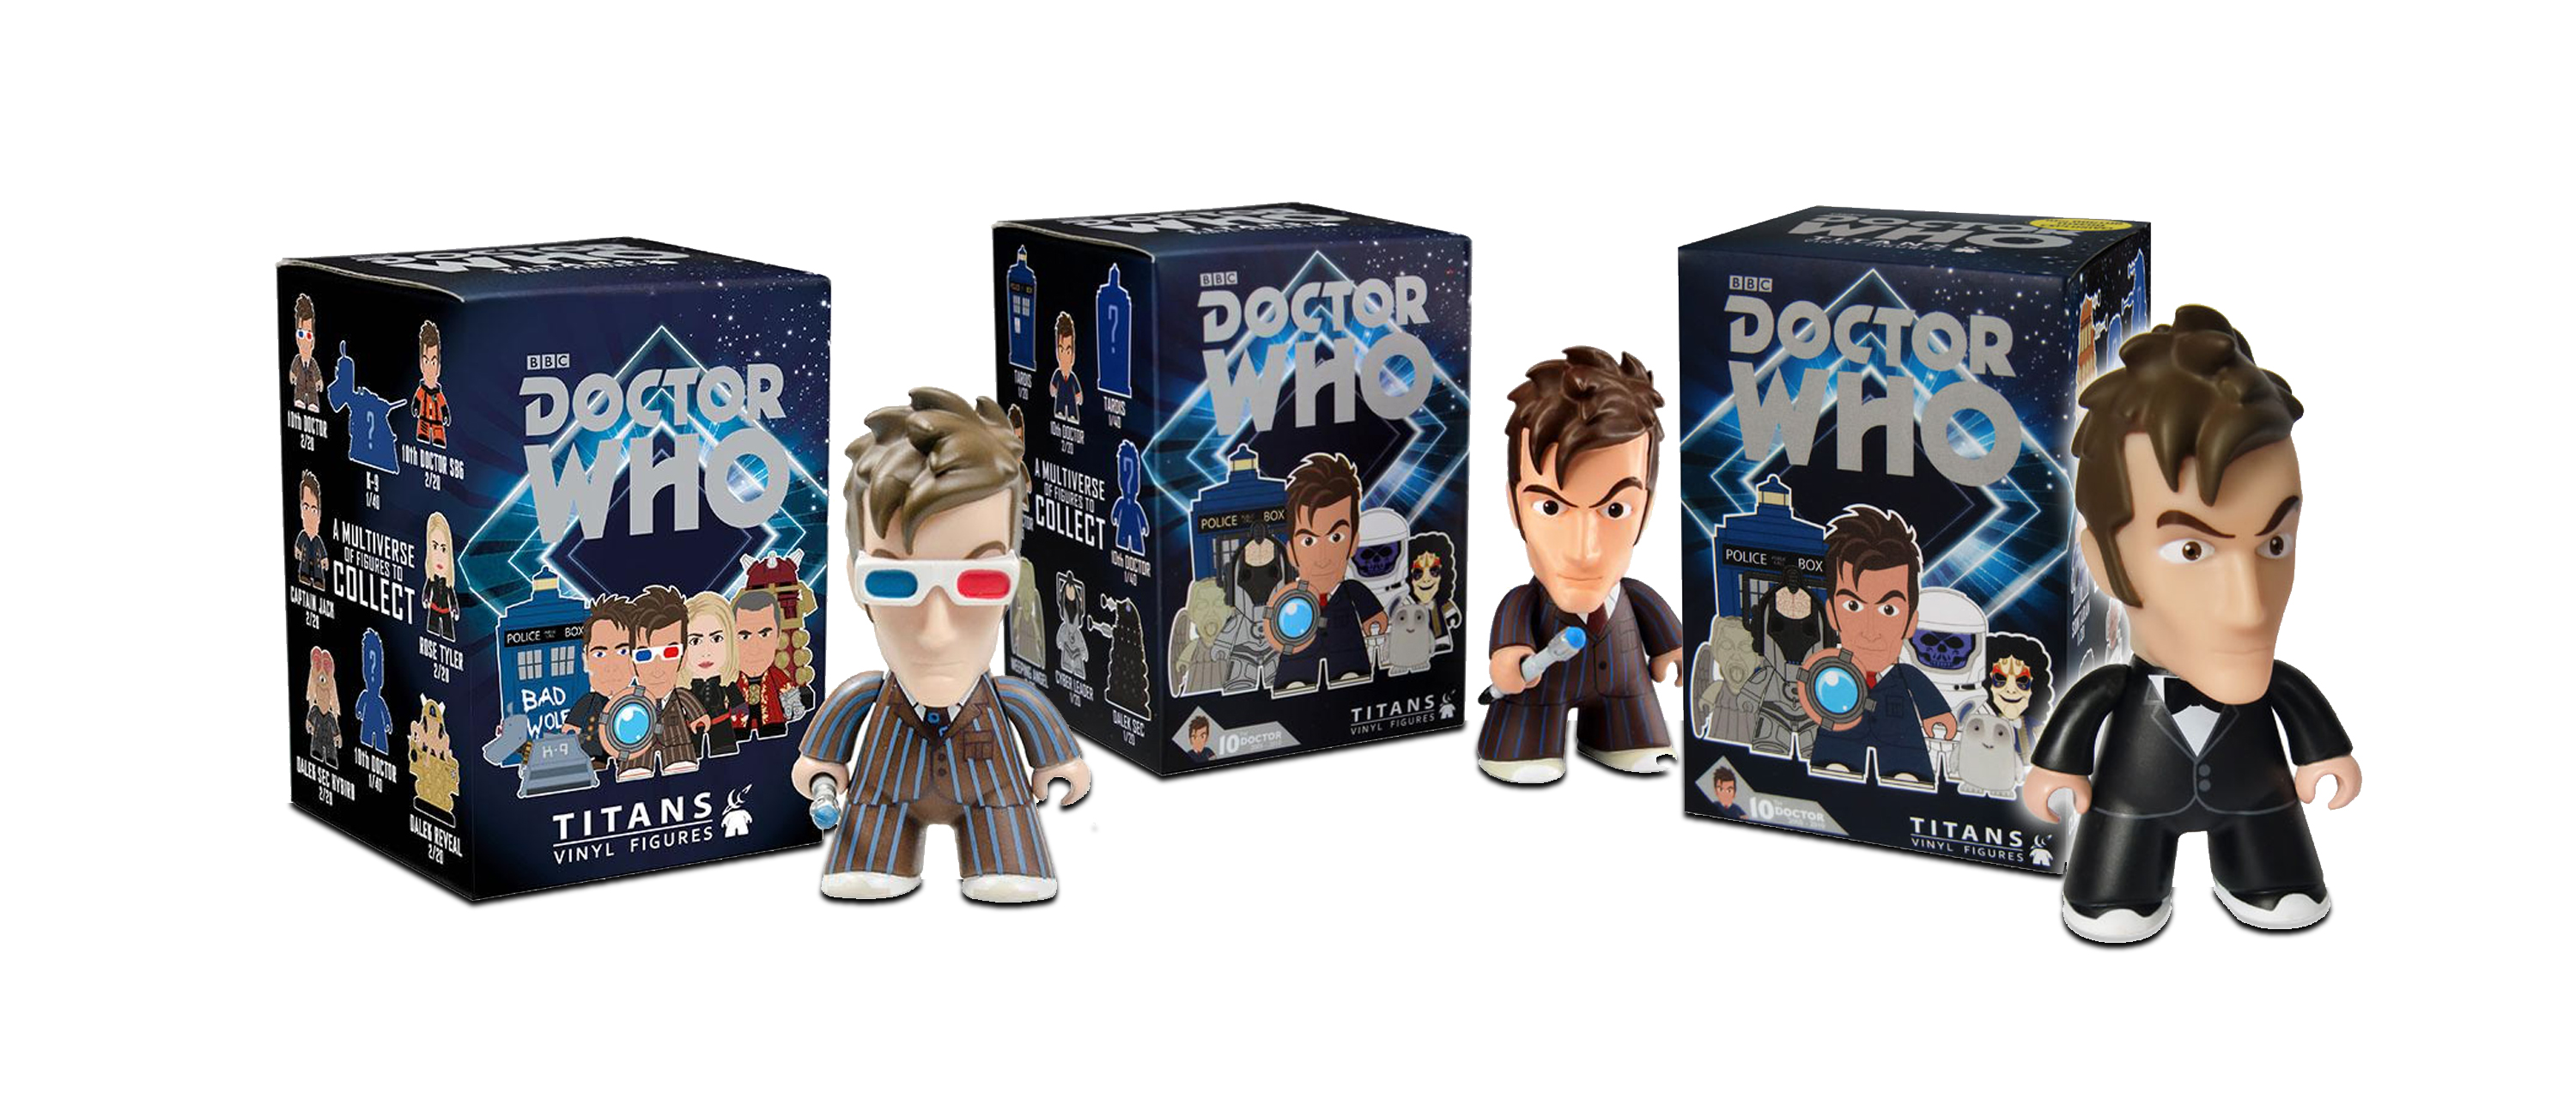 sculptworks vinyl collectible doctor who 09